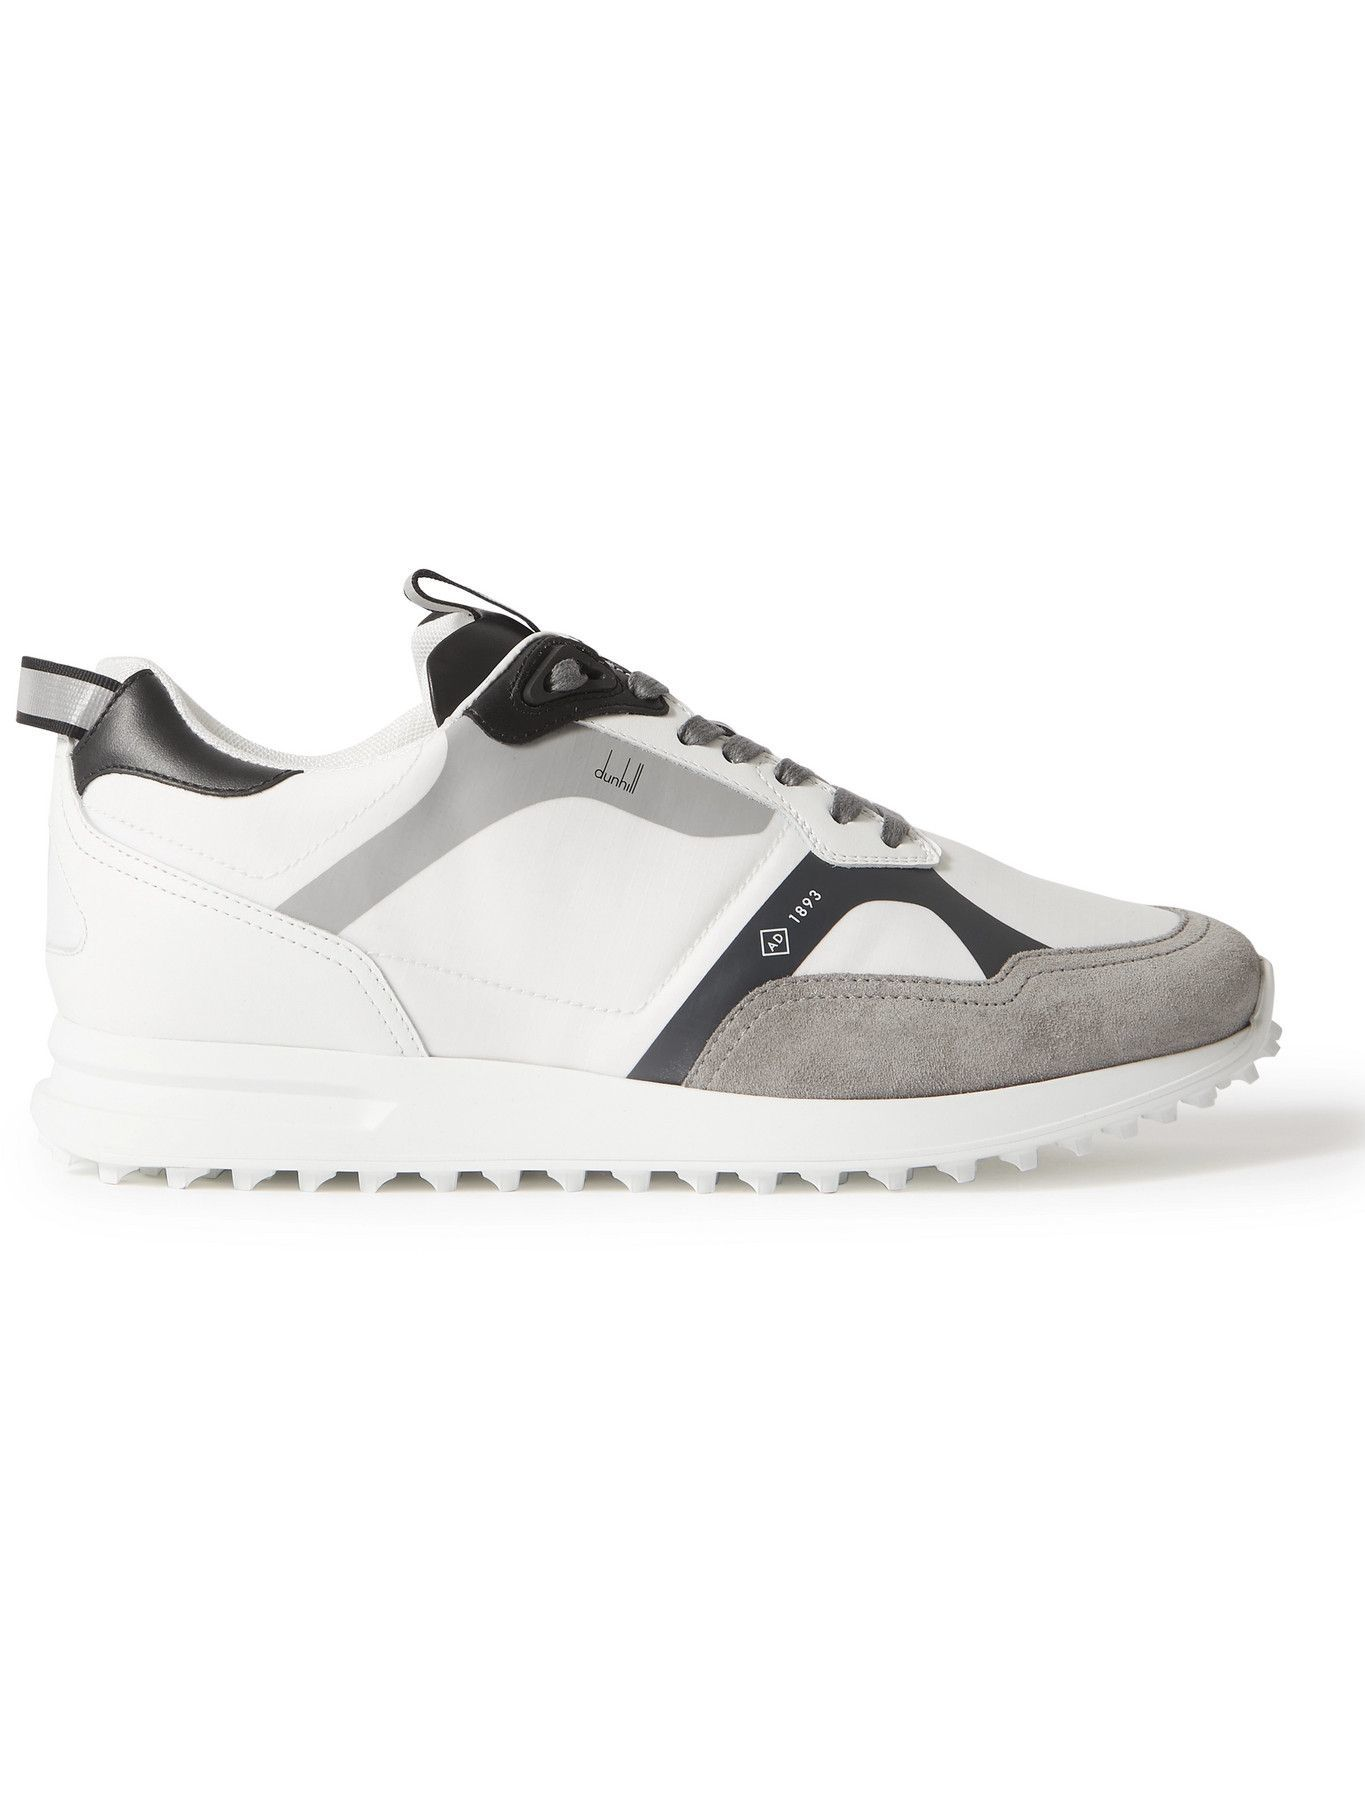 DUNHILL - Radial 2.0 Leather and Suede-Trimmed Ripstop Sneakers - White